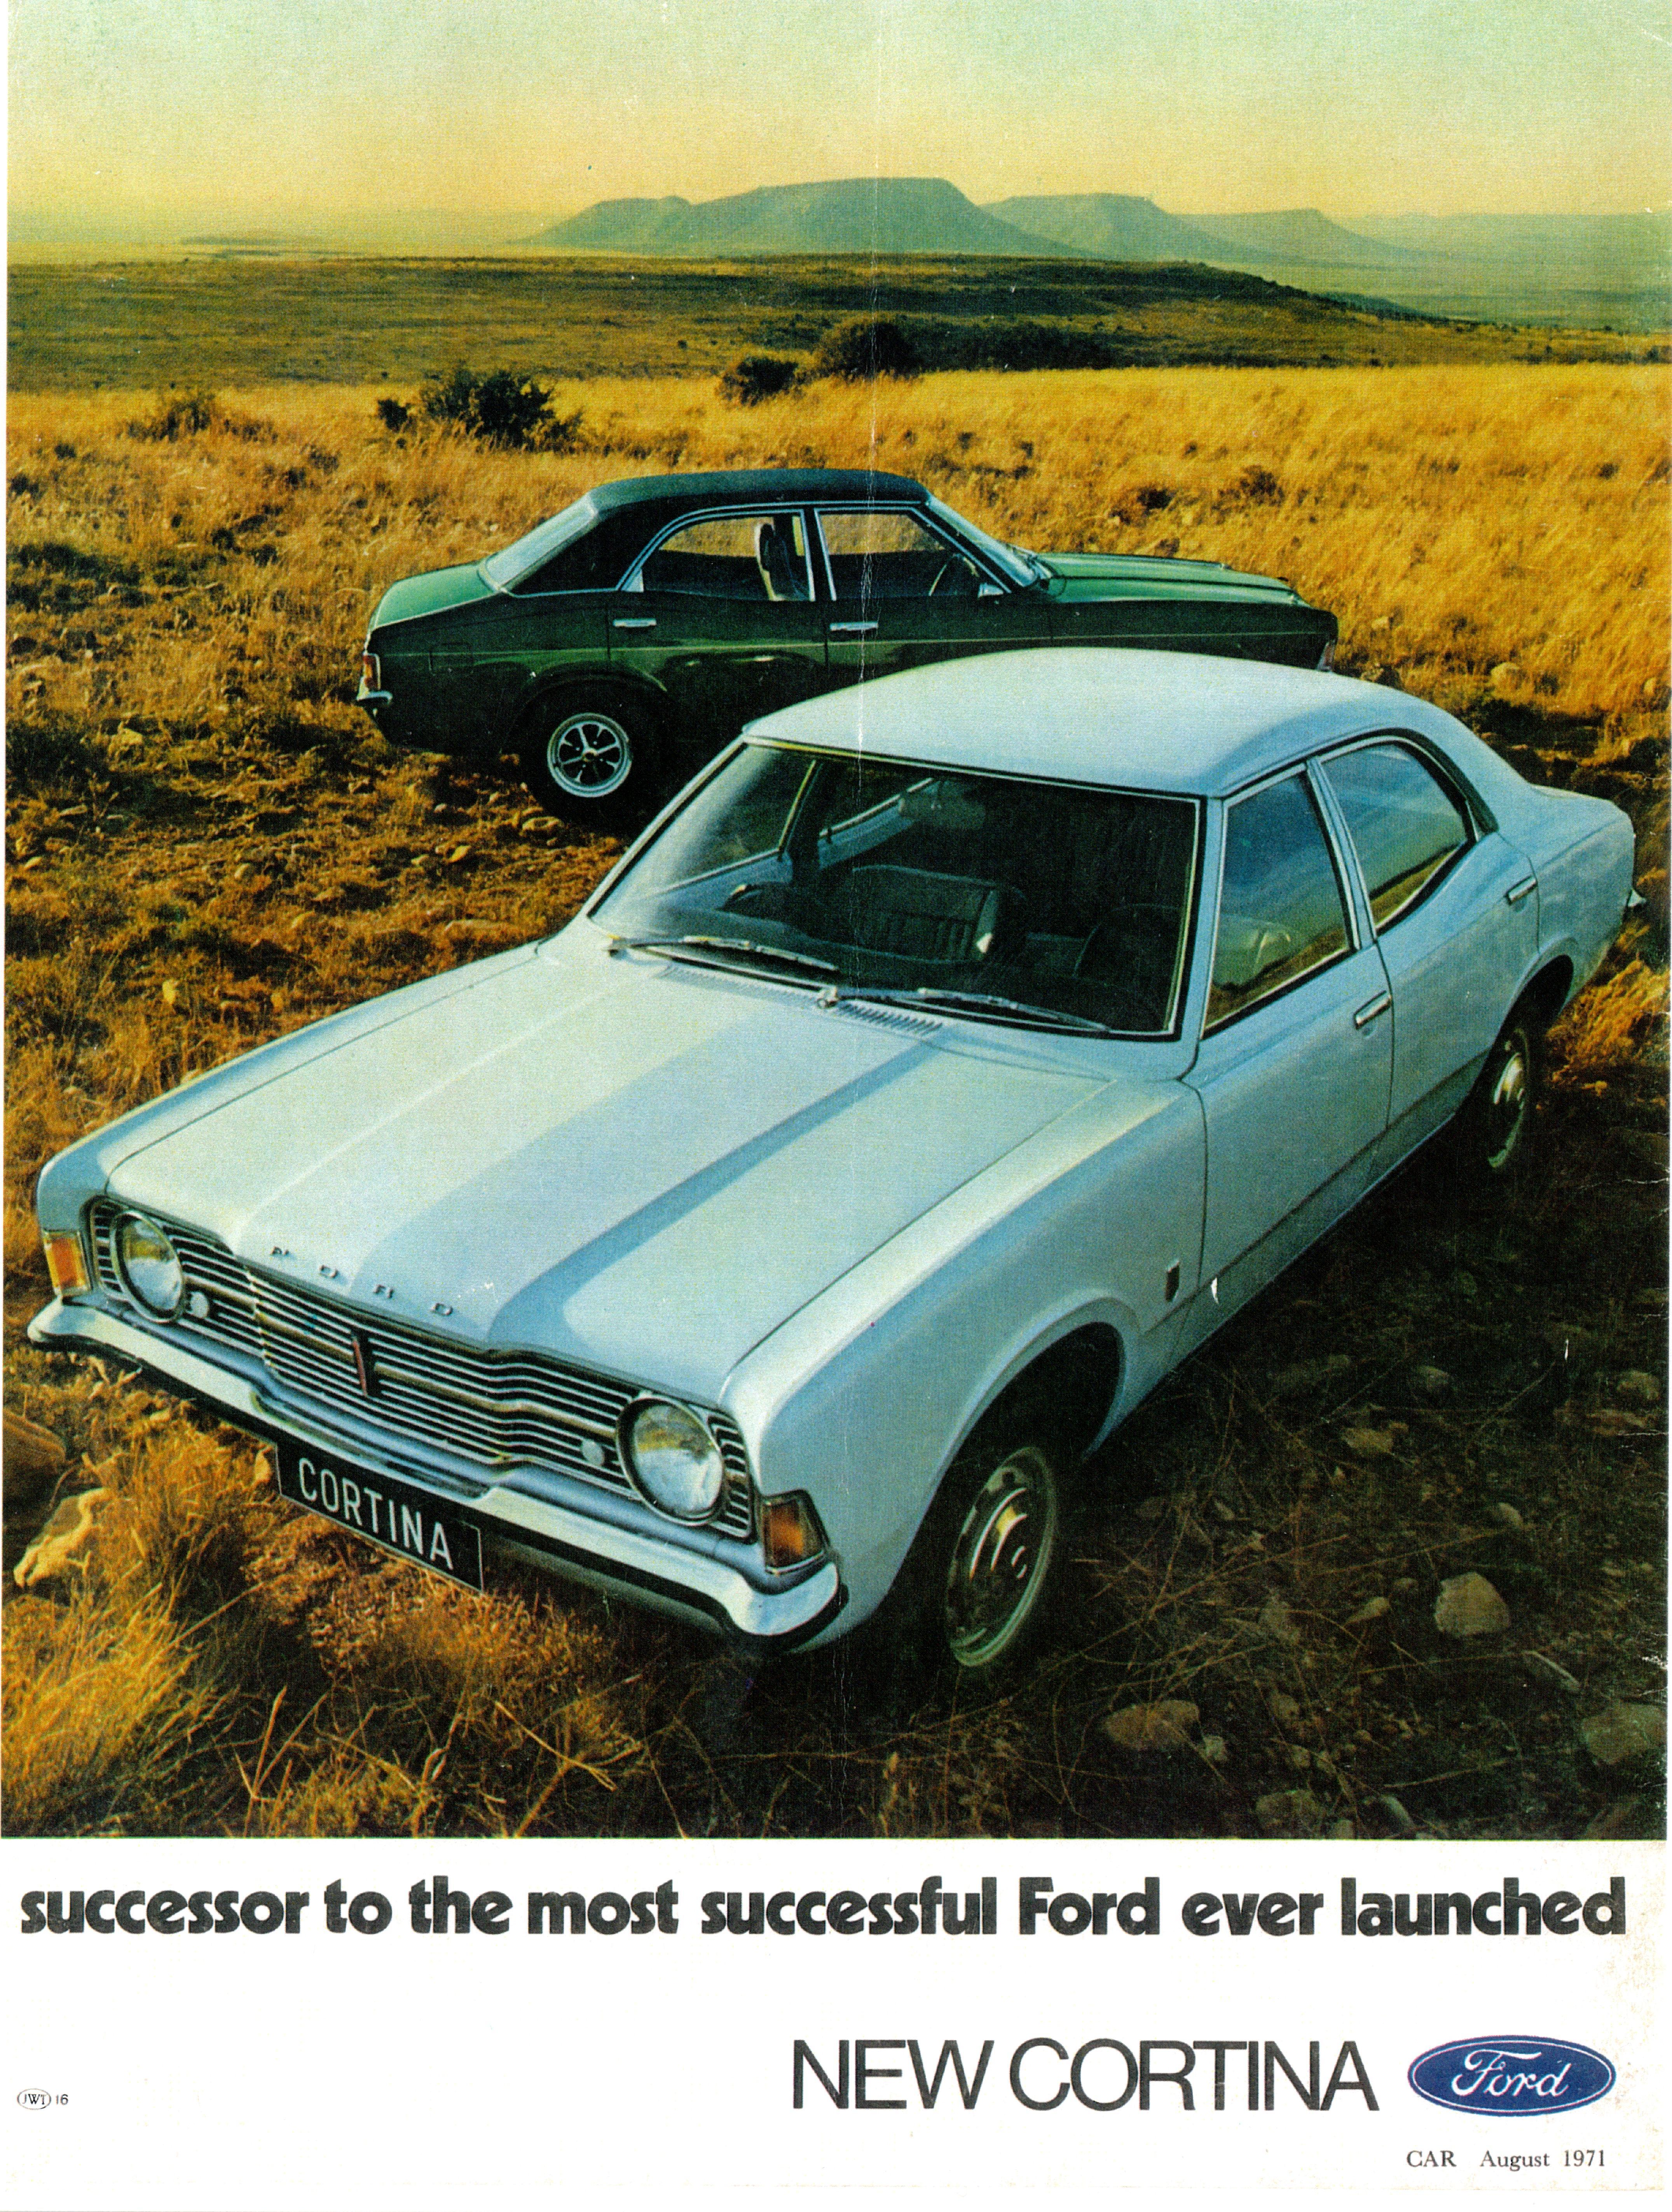 South African ad for the new Cortina Mk 3 from 1971.